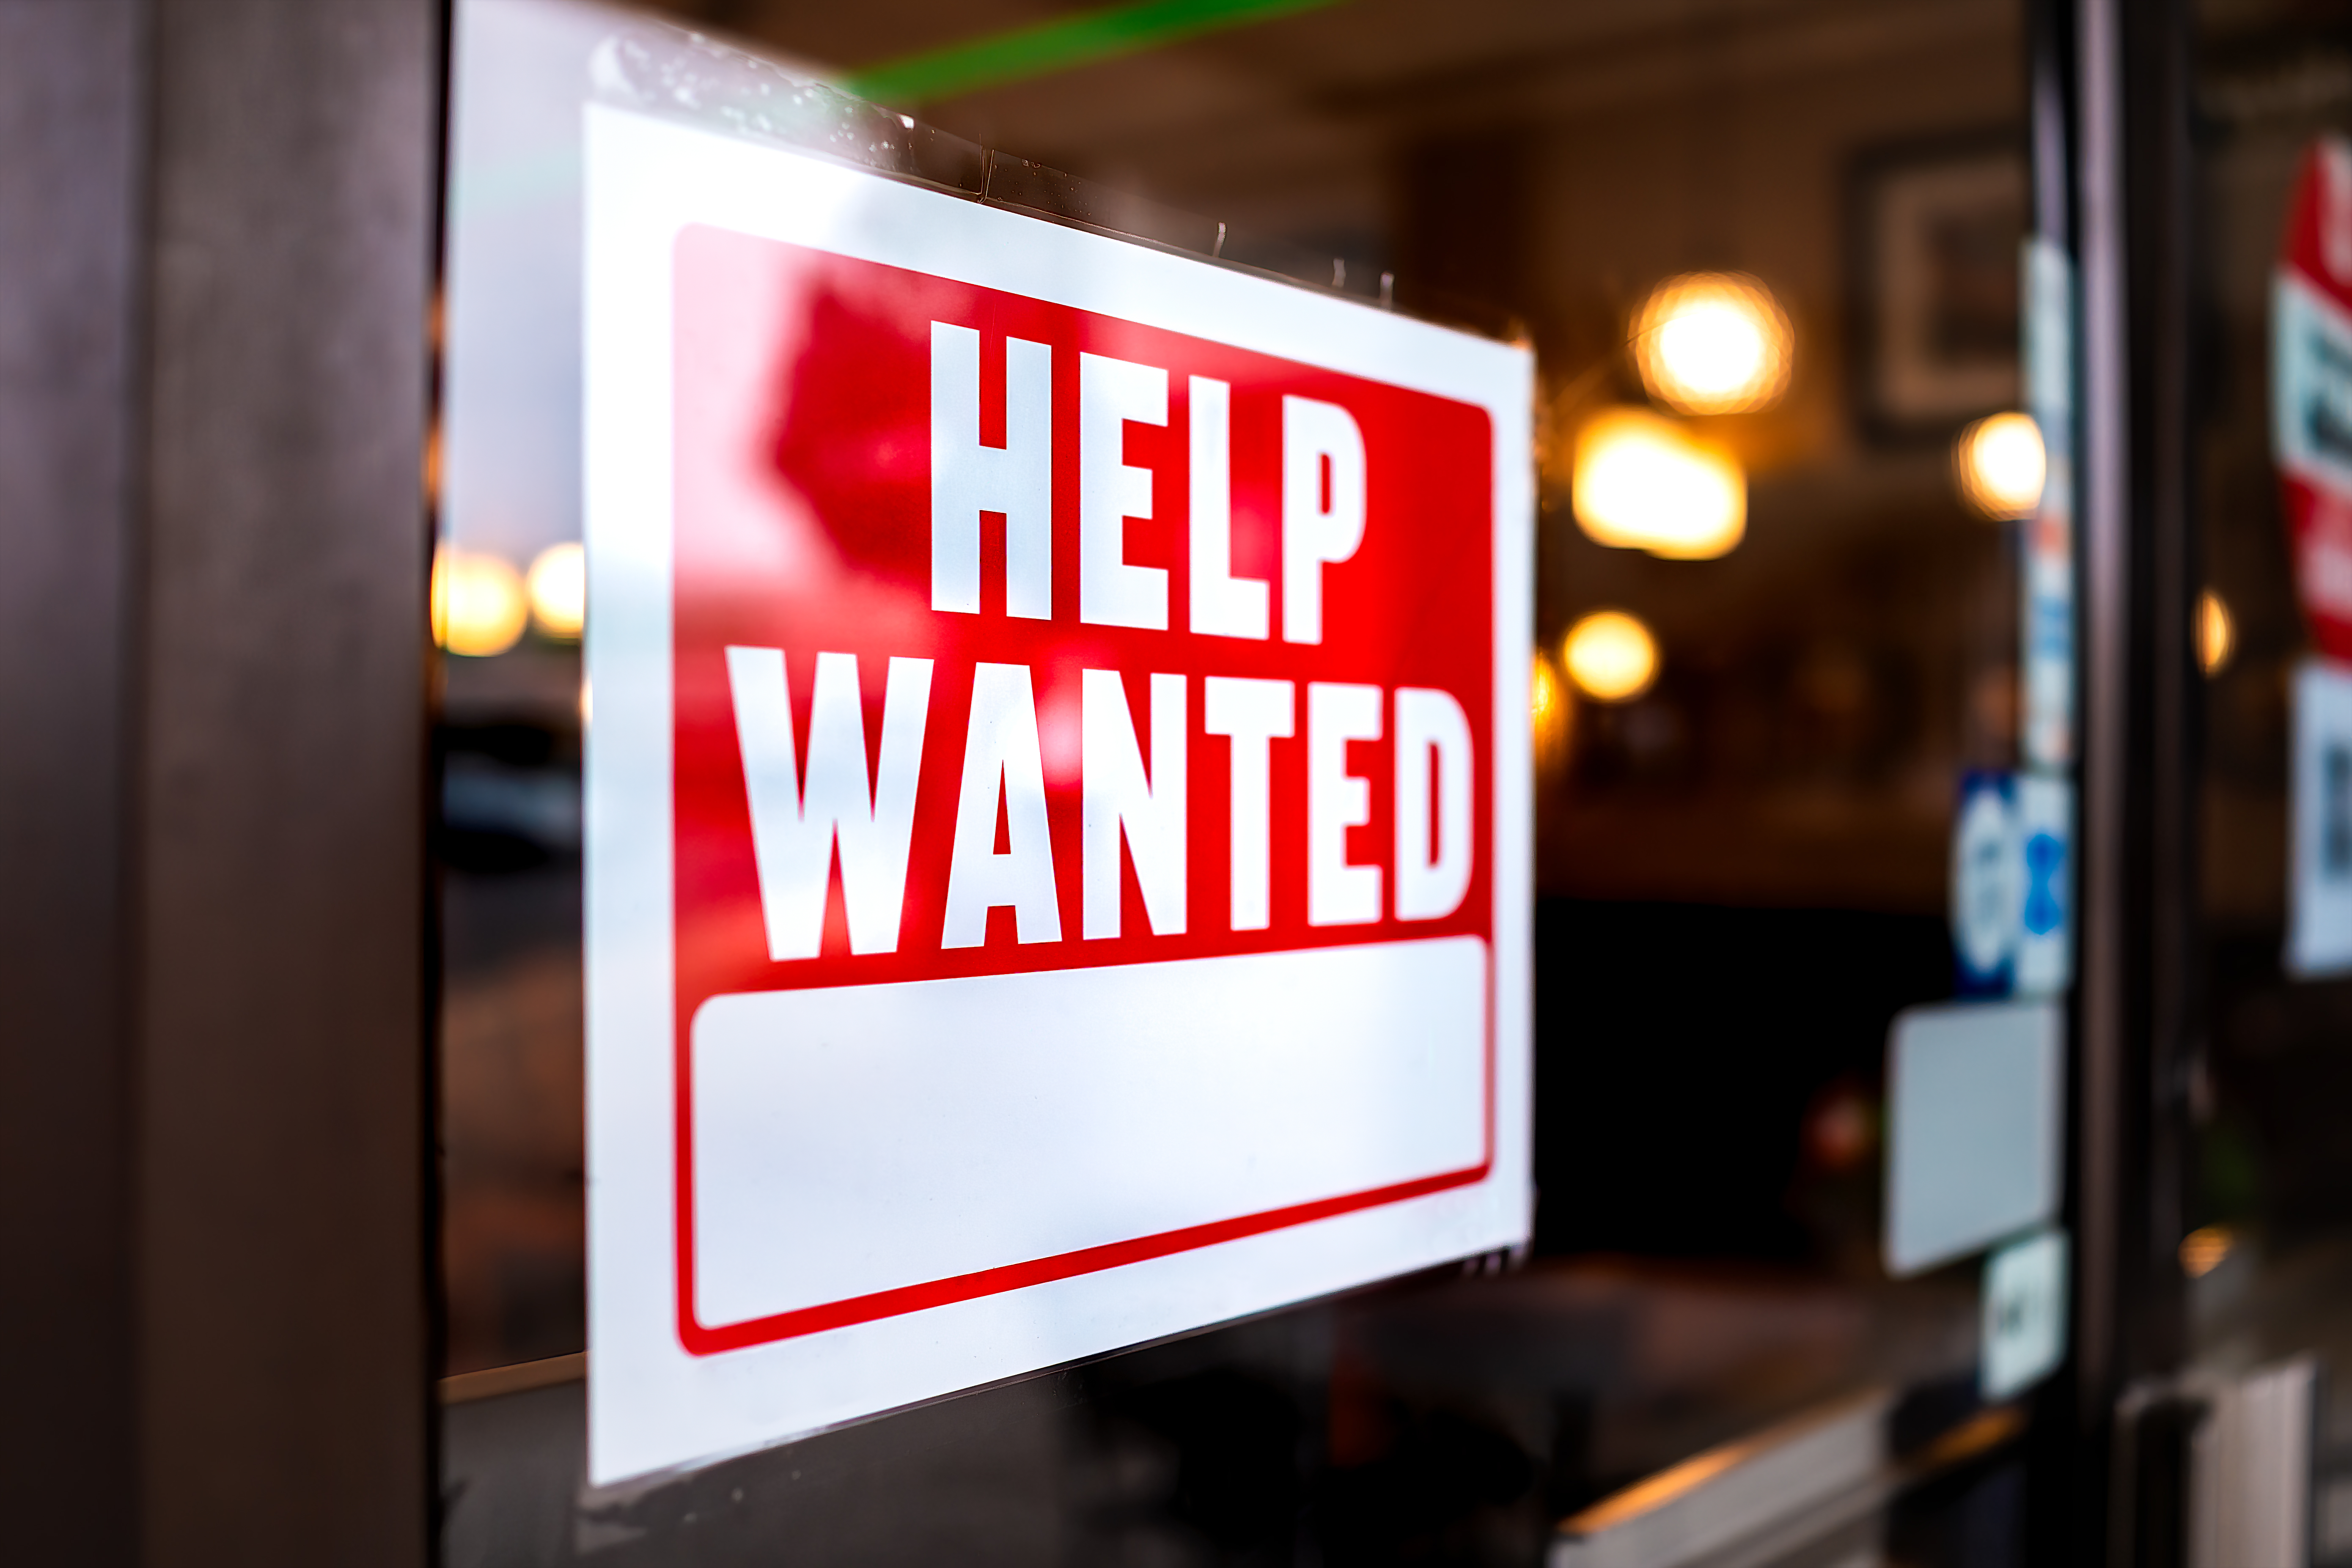 A red and white help wanted sign hangs in the window